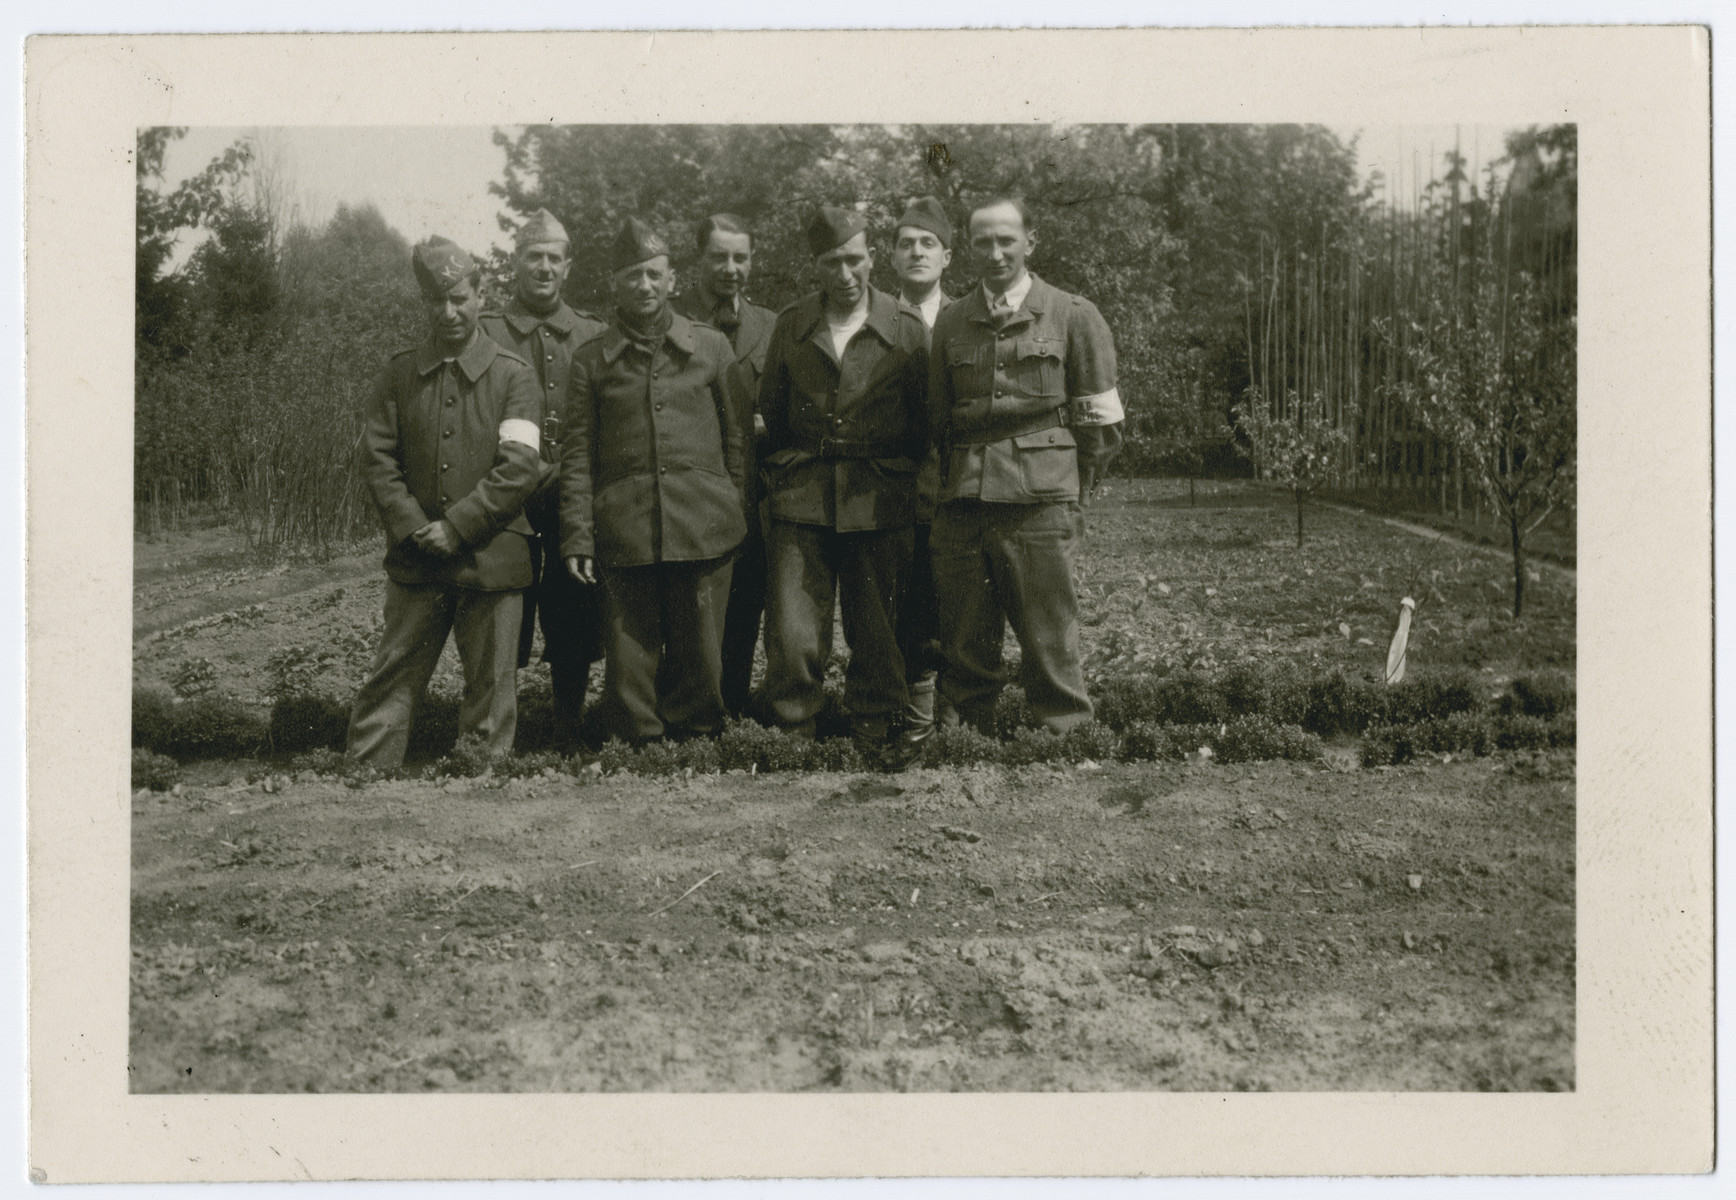 Group portrait of Belgian POWS in Stalag 10 C.  Henry Kahn is pictured on the right.